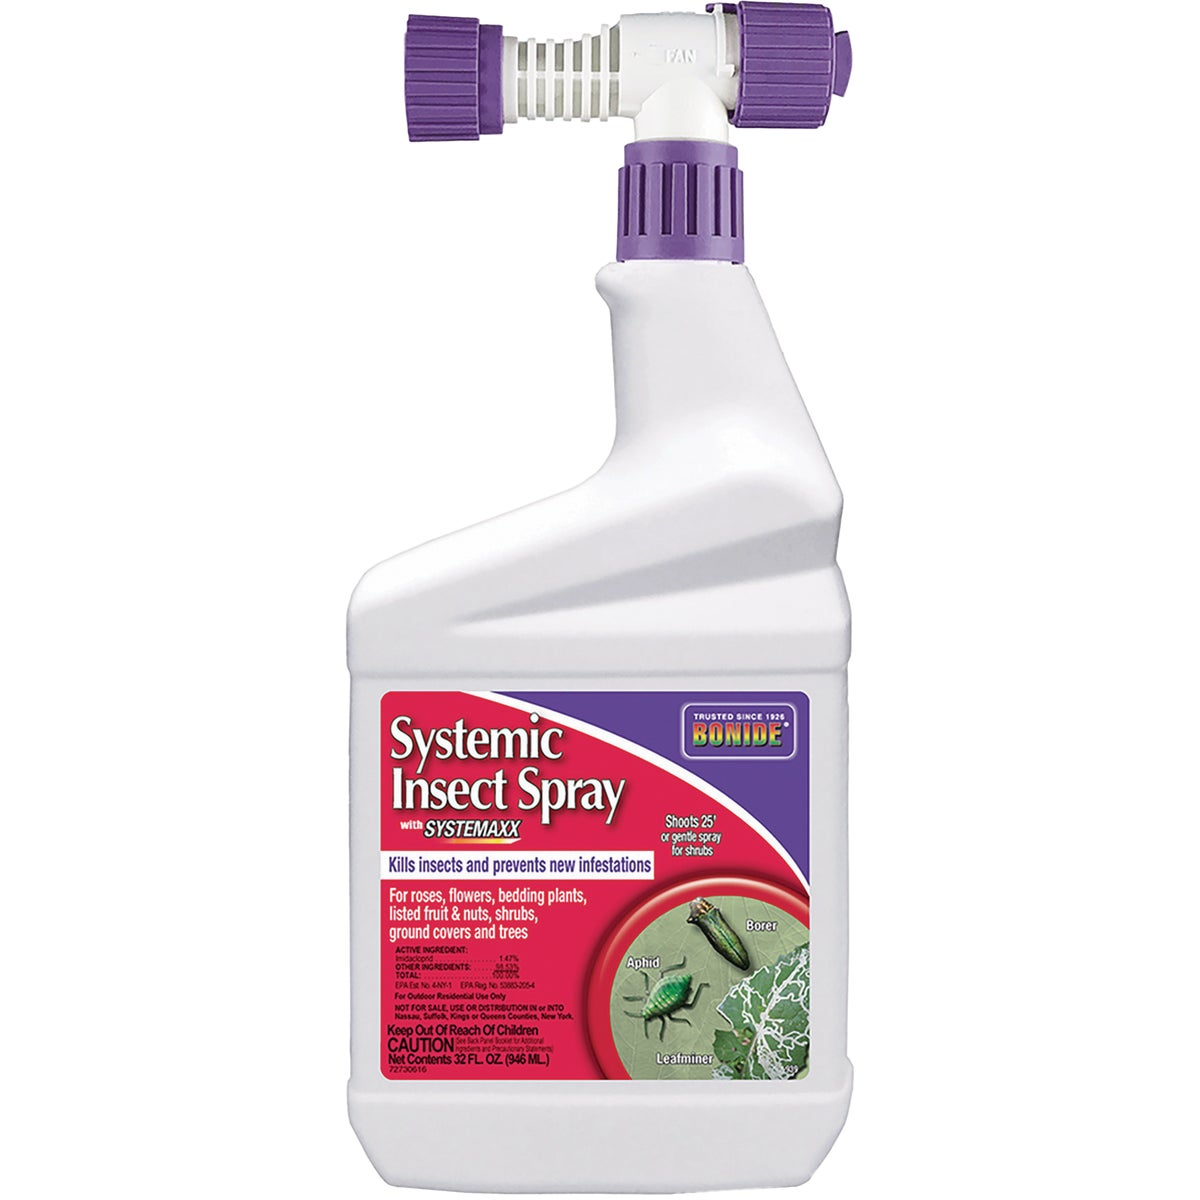 QT SYS INSECT KILLER - 939 by Bonide